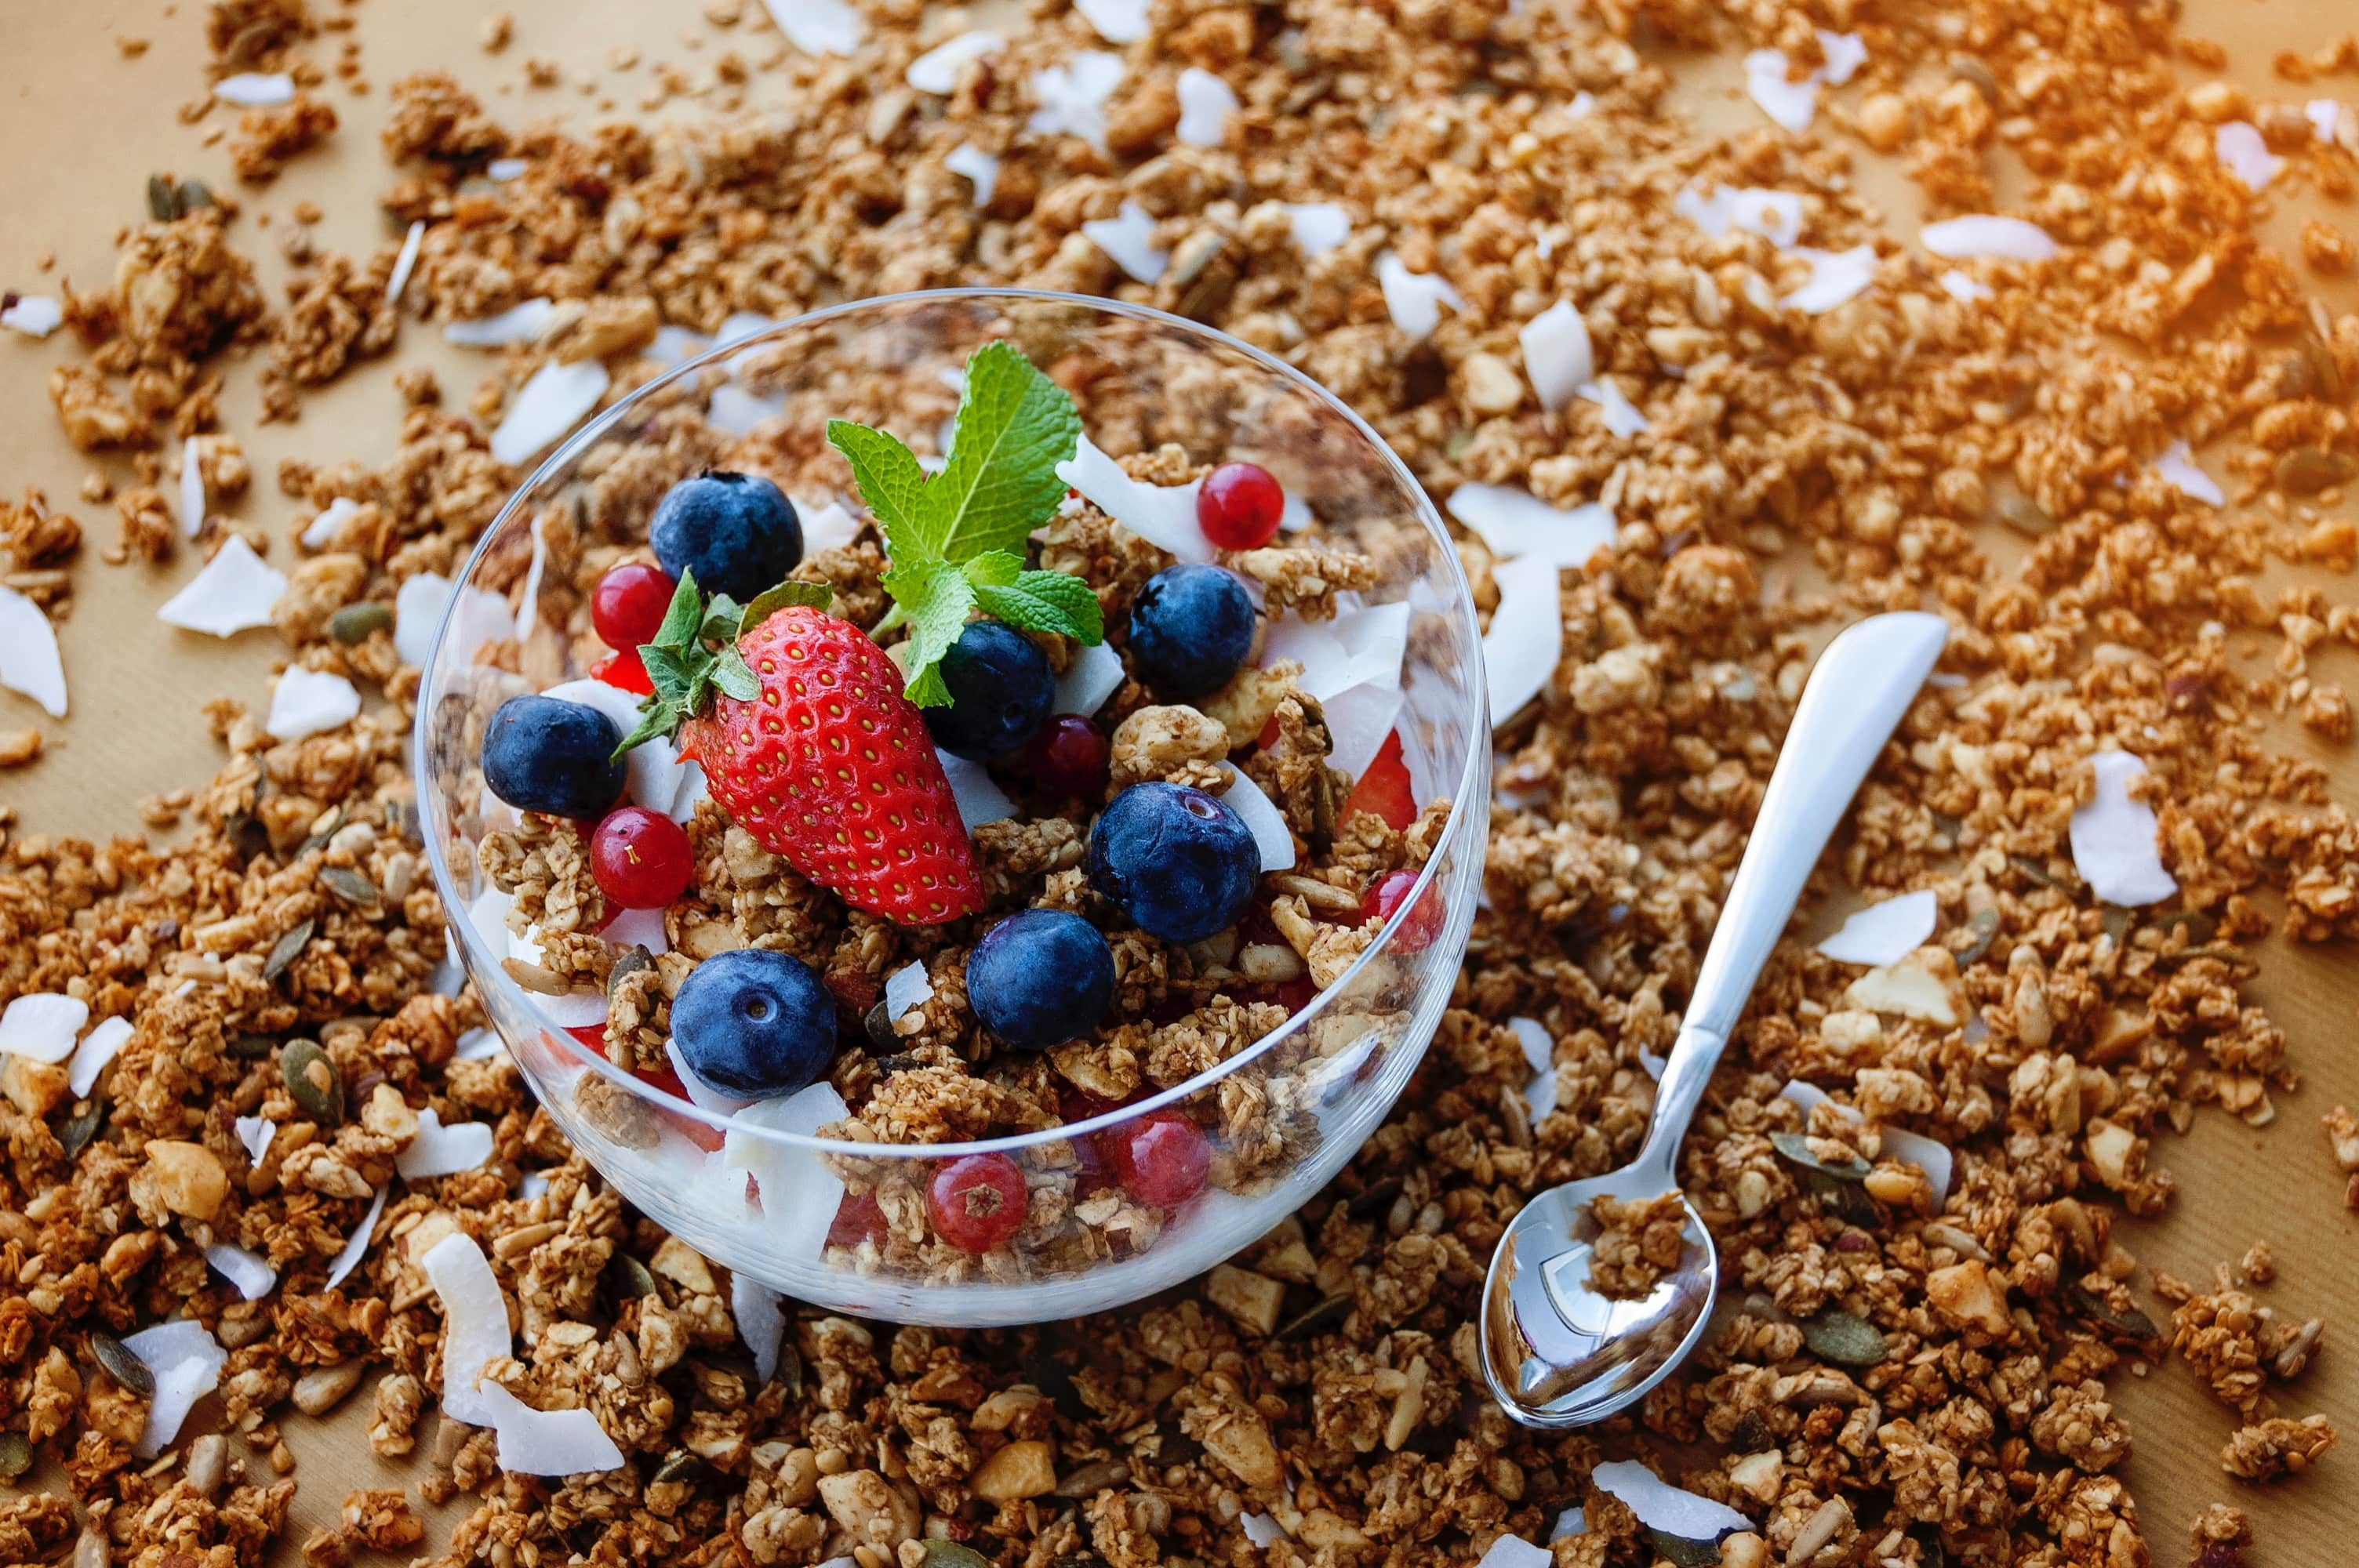 Granola has always been the healthy alternative to chocolate and a great healthy office snack